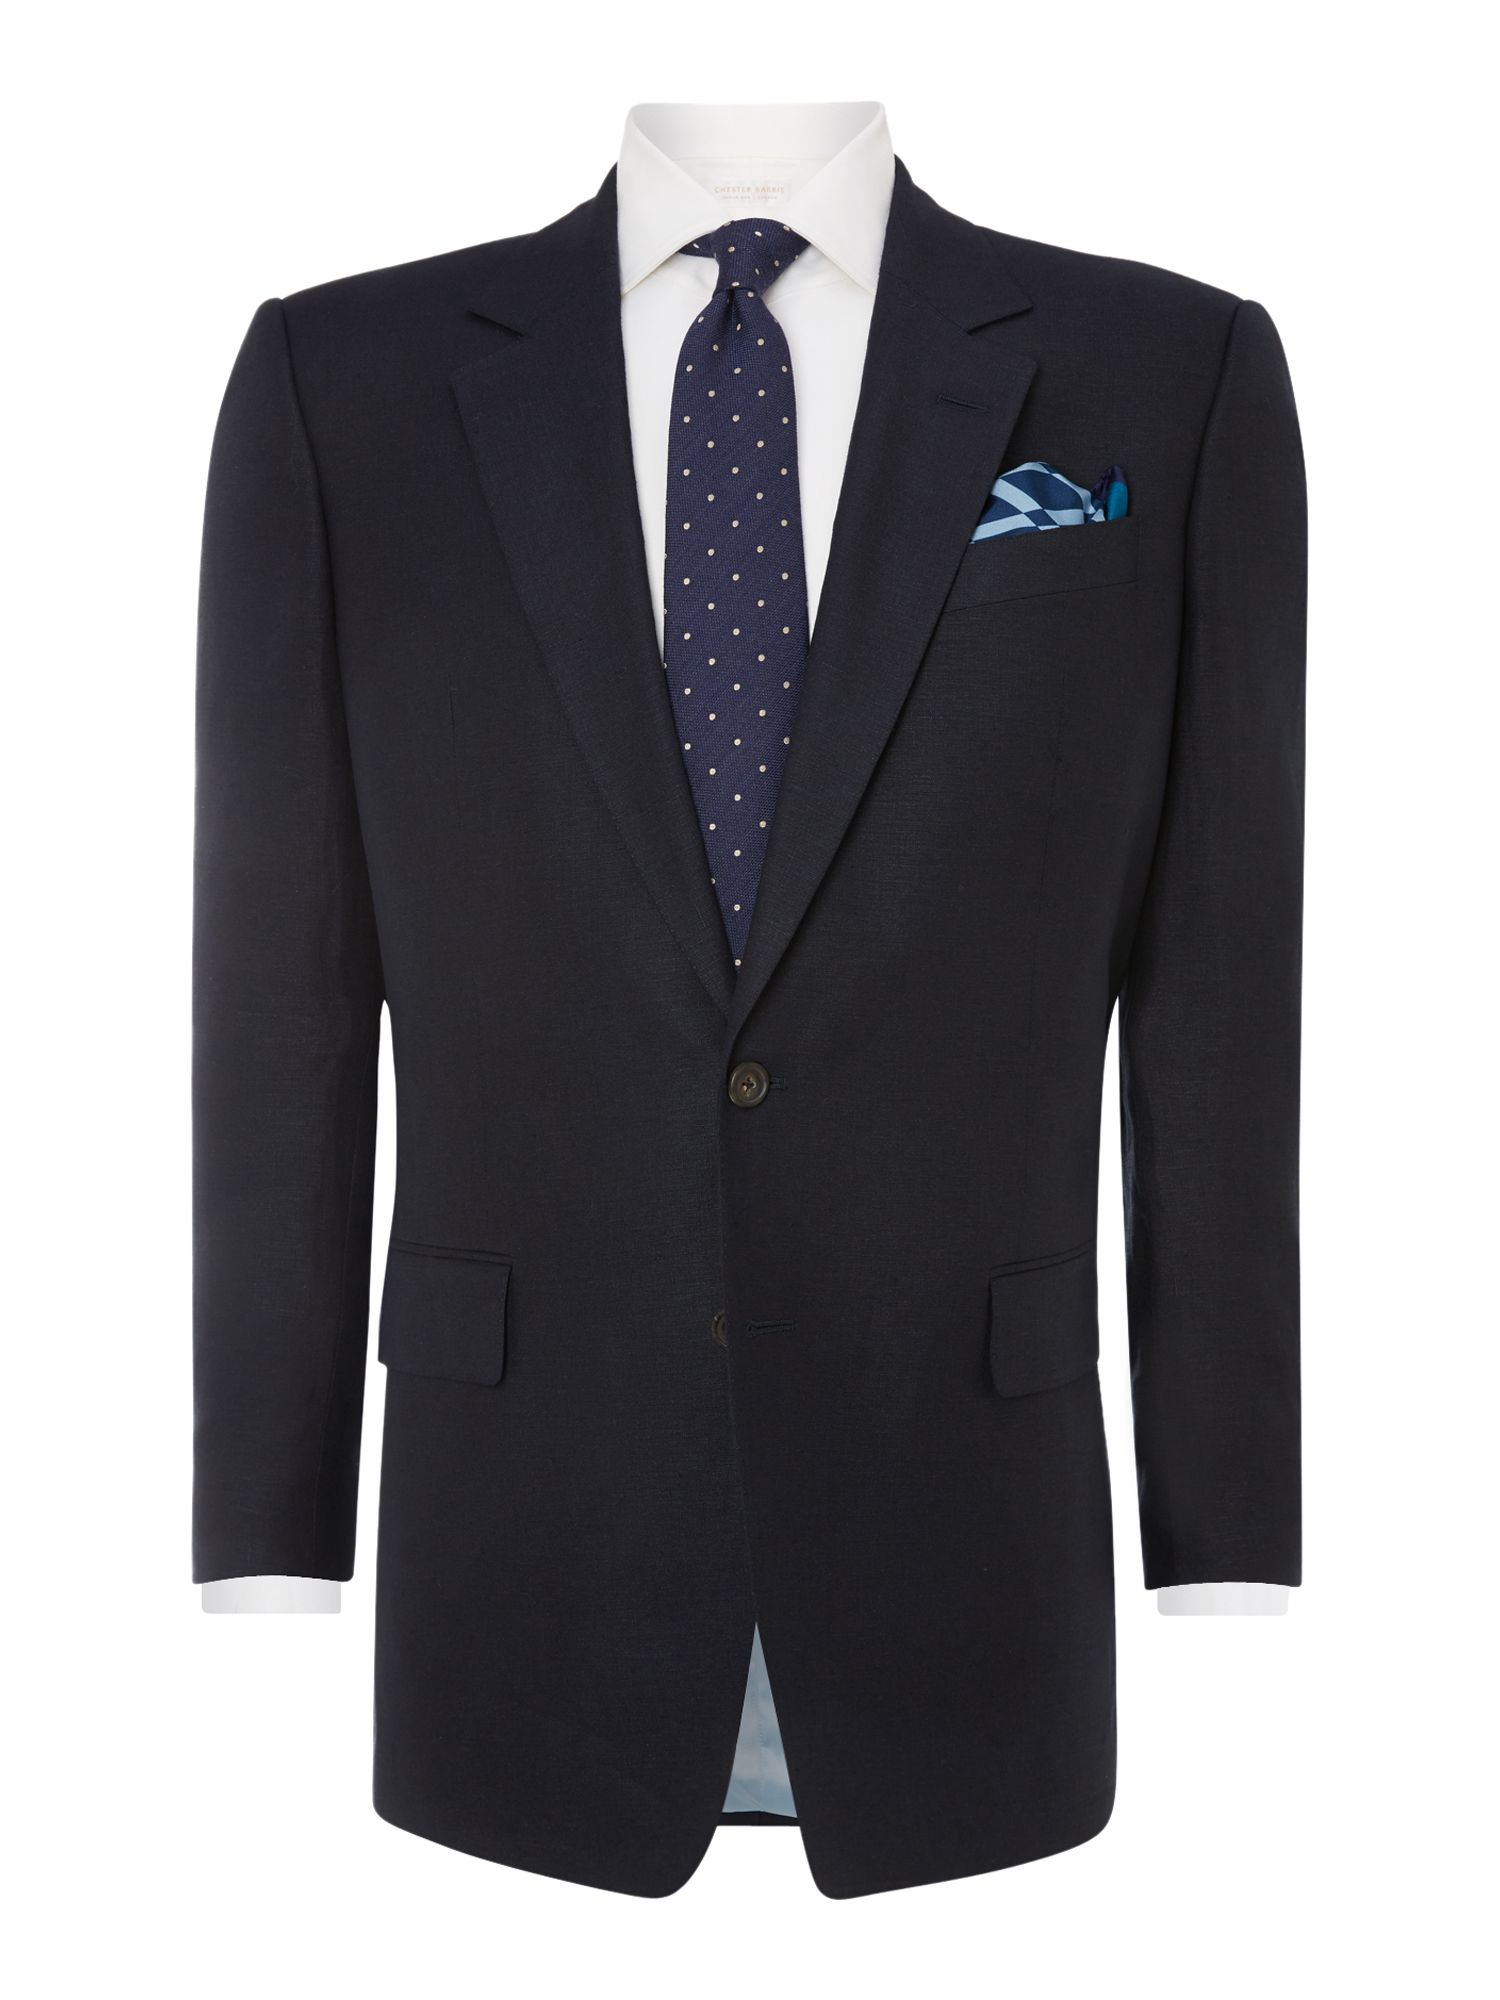 Classic formal suit jacket